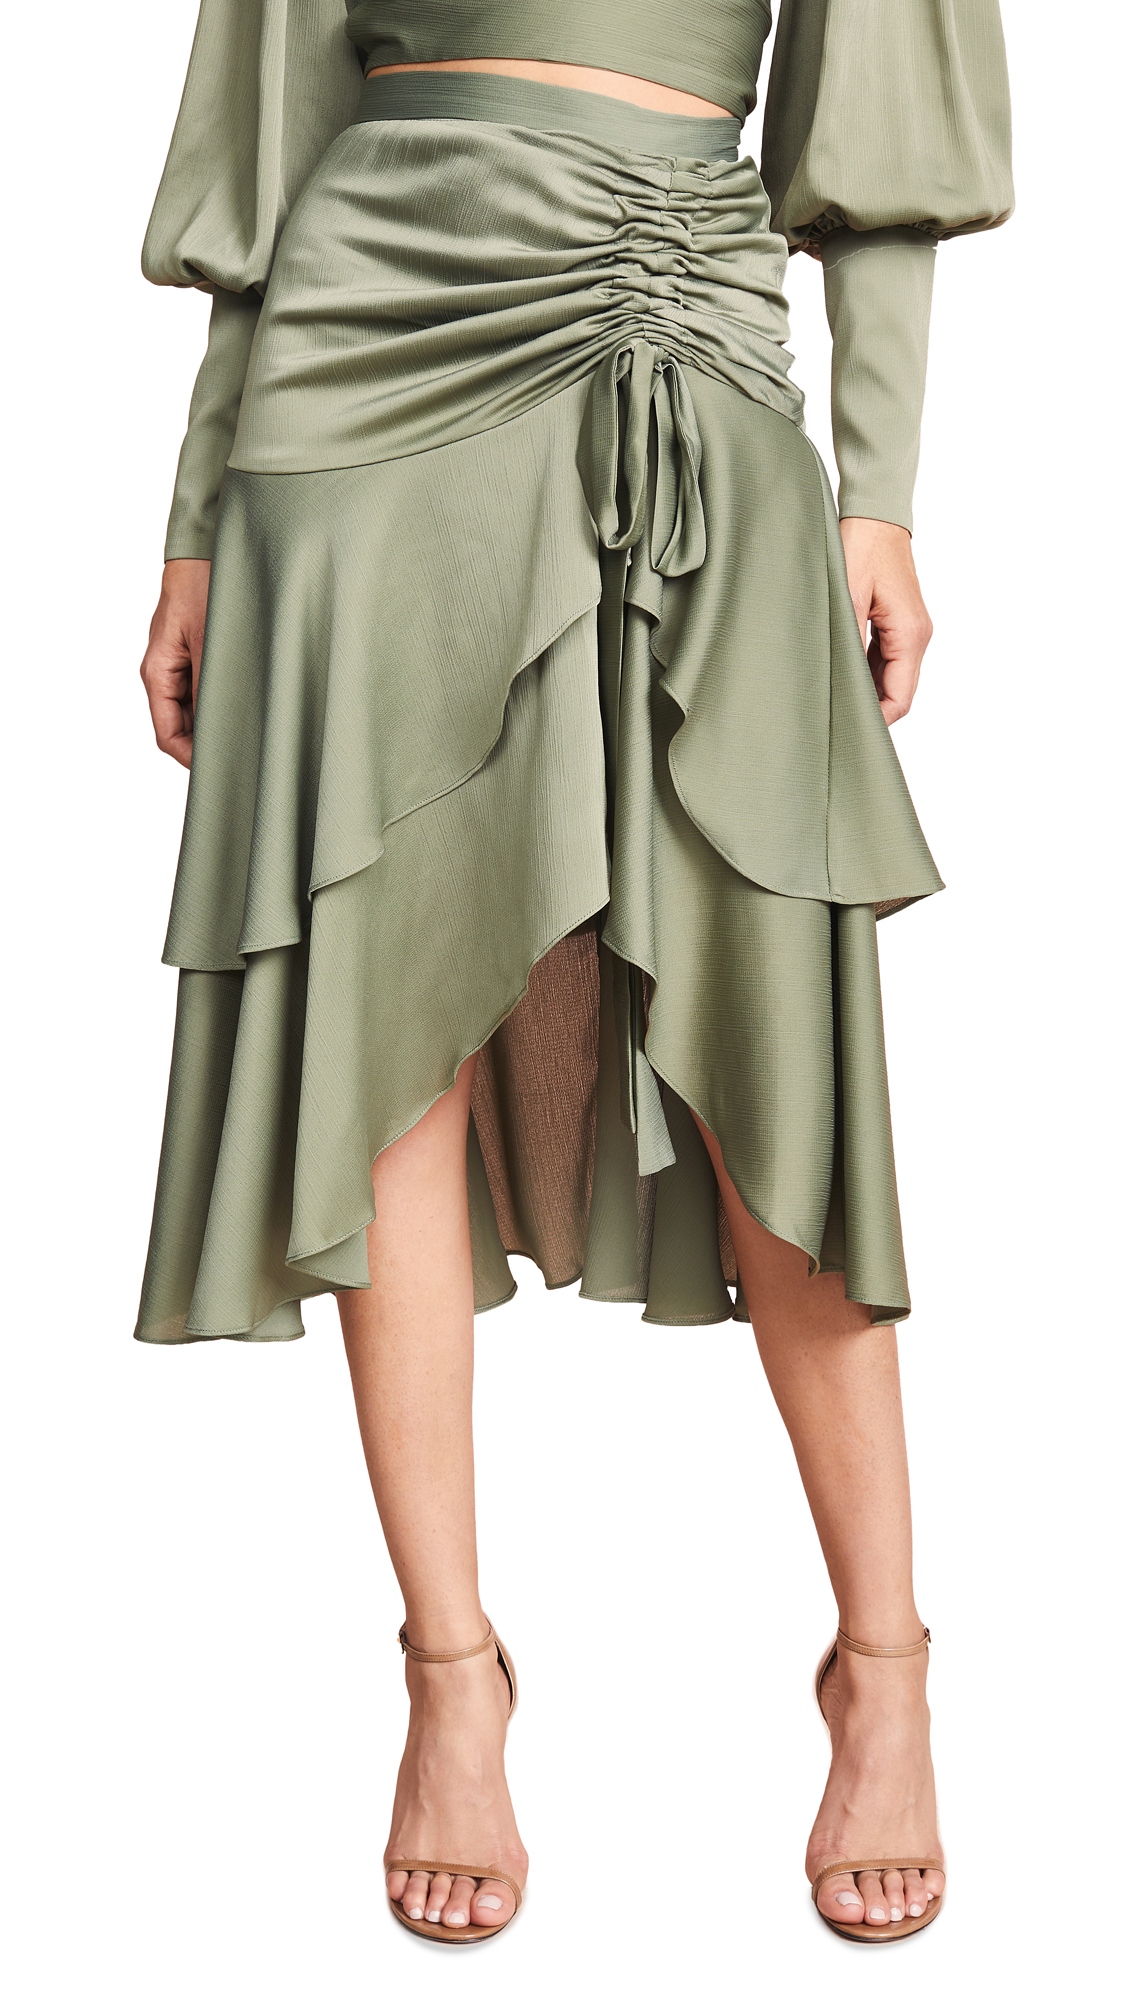 Keepsake Oceans Skirt In Khaki